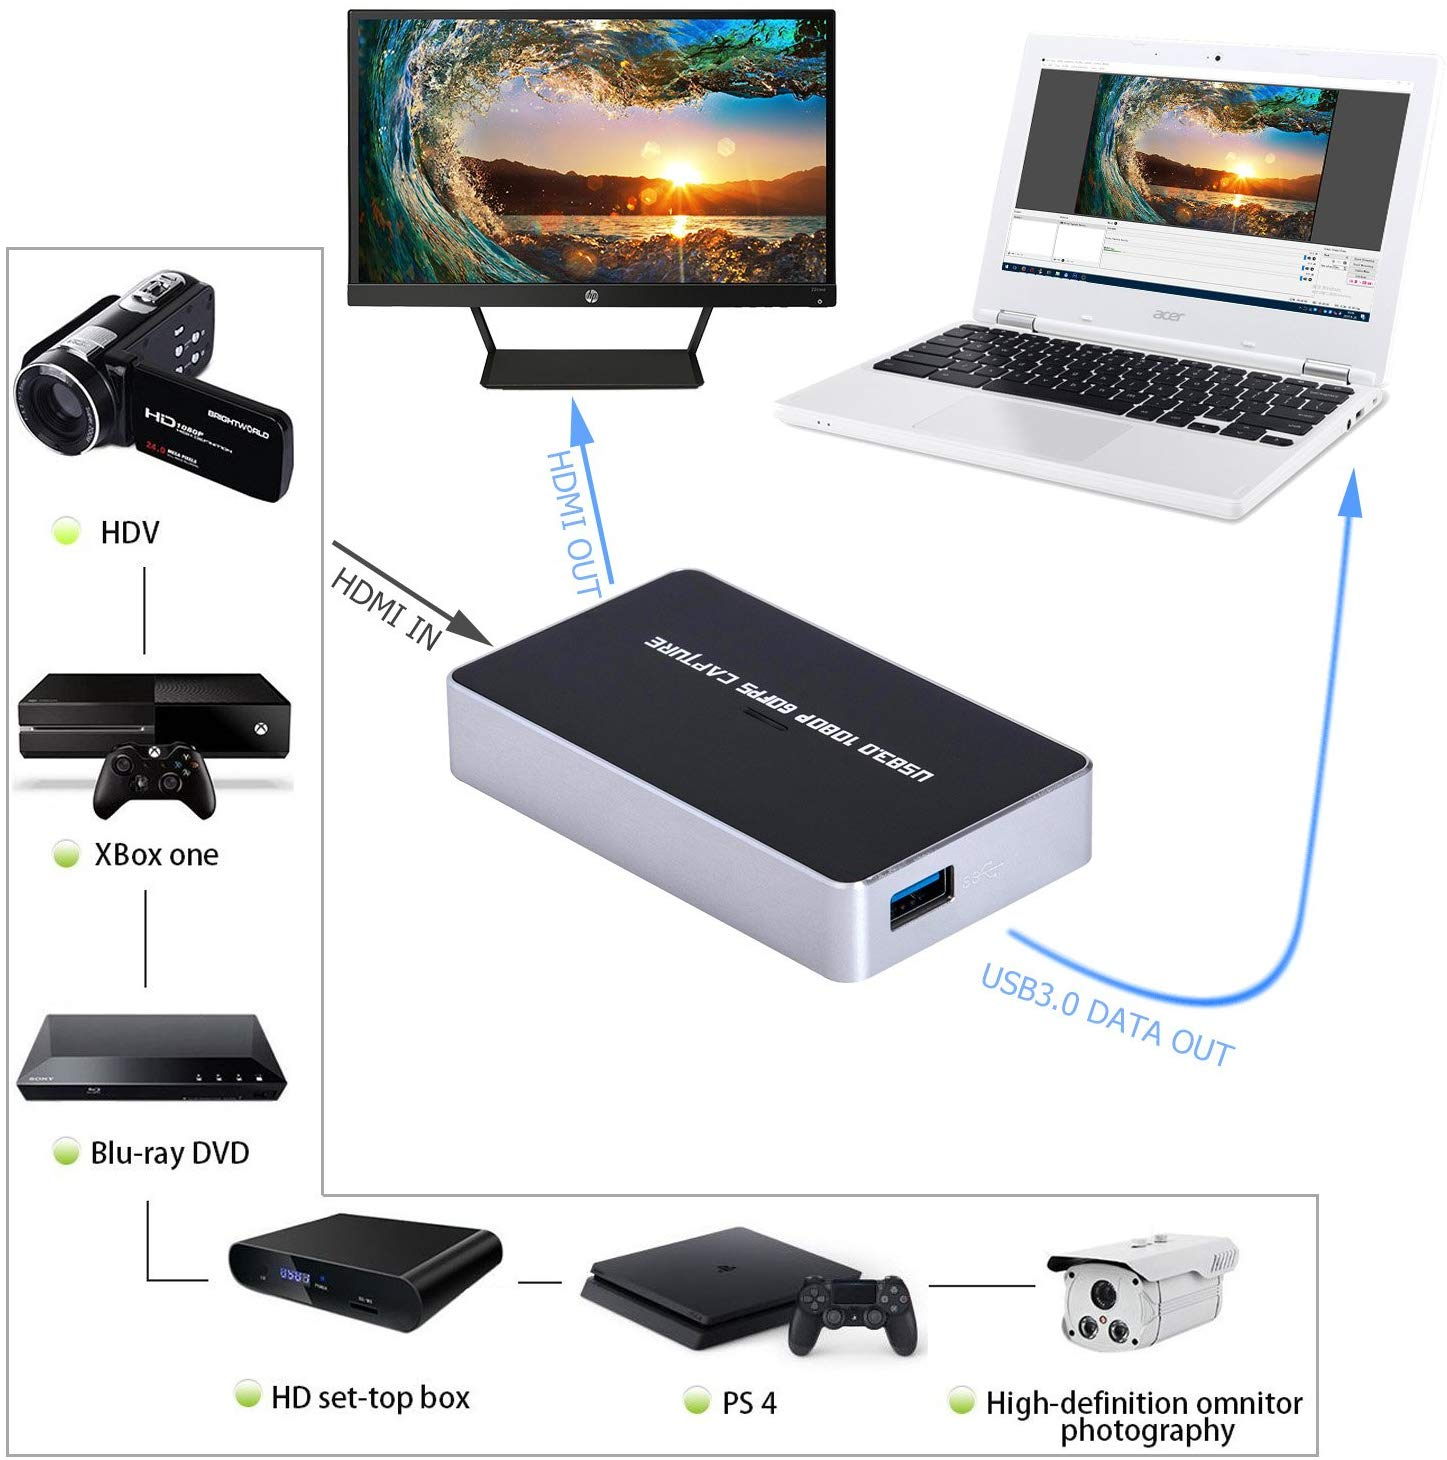 USB3.0 HDMI video Capture card record video as 1080P 60fps with Full HD 1080P Live Streaming Broadcast function ezcap261P